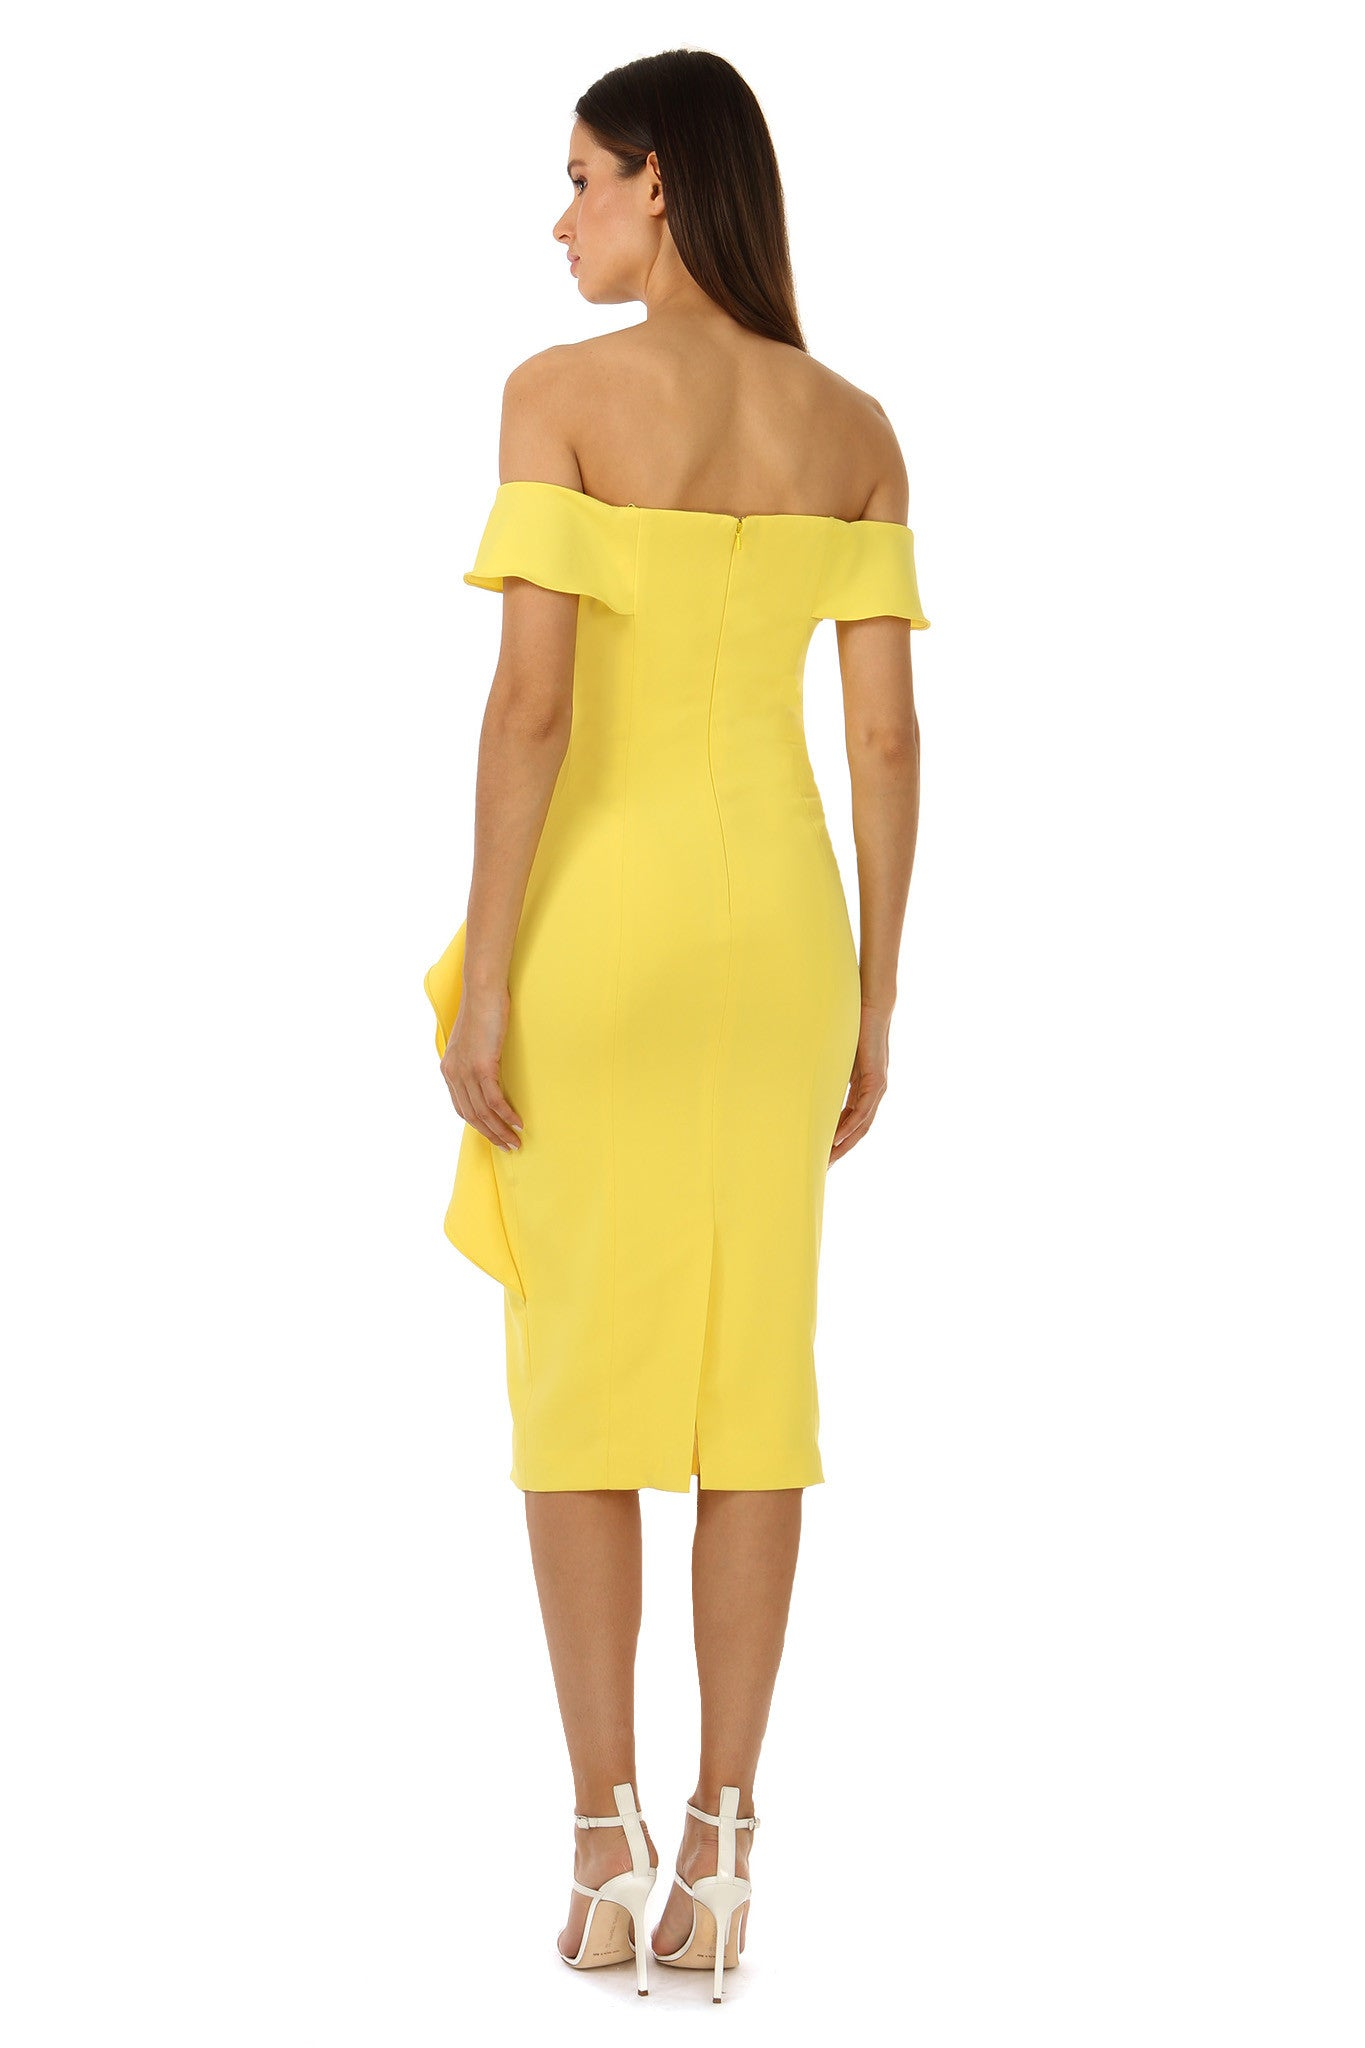 Jay Godfrey Off-the-Shoulder Yellow Dress - Back View